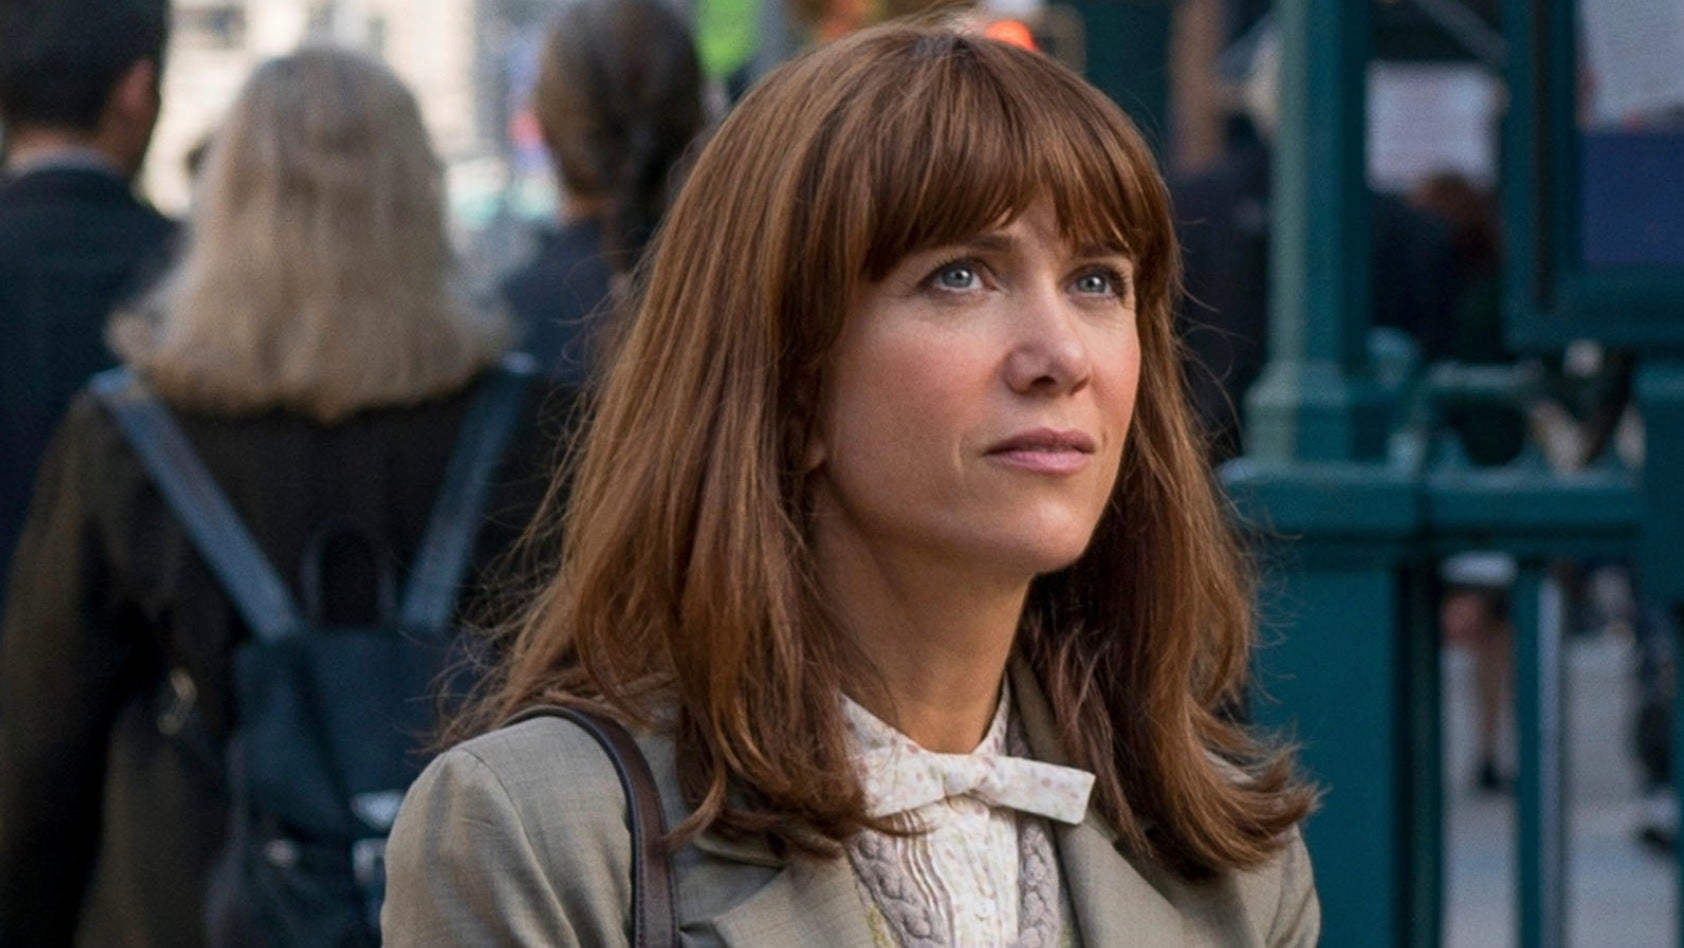 Kristen Wiig May End Up Being The Villain Of Wonder Woman 2